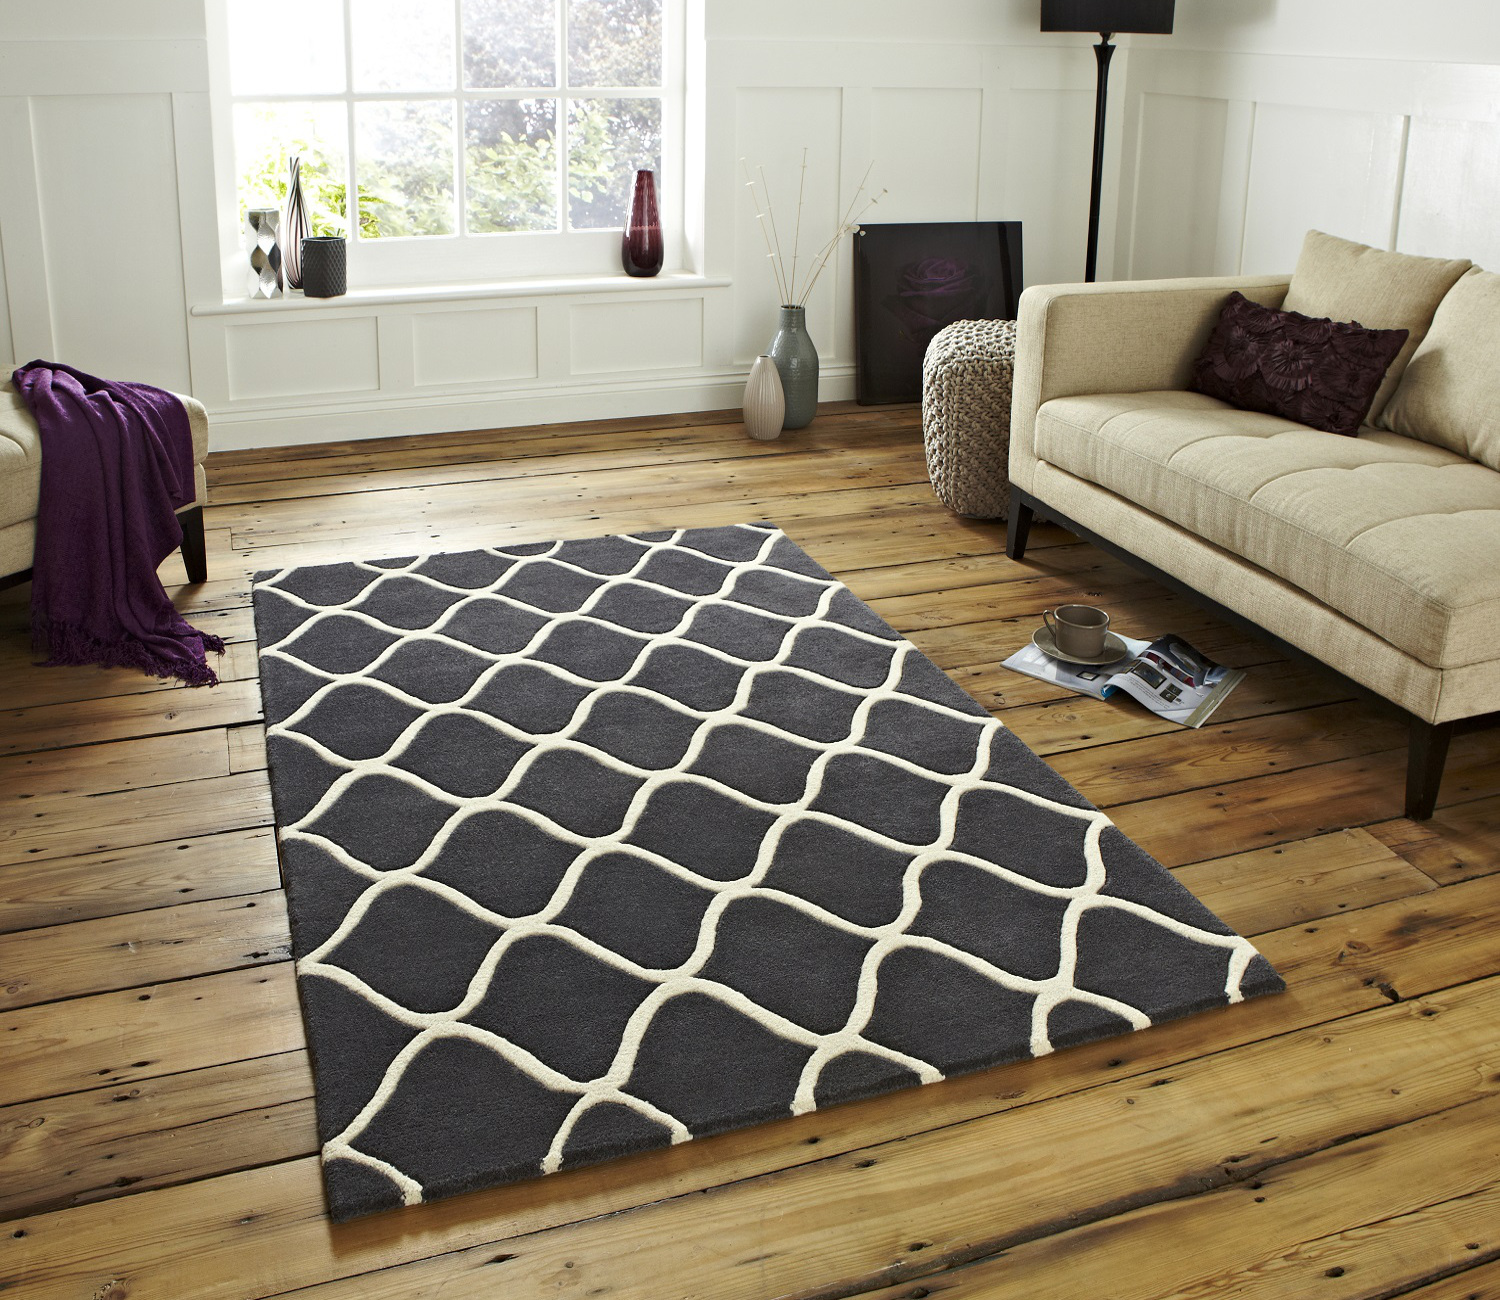 wave design hand tufted 100% wool rug contemporary home decor